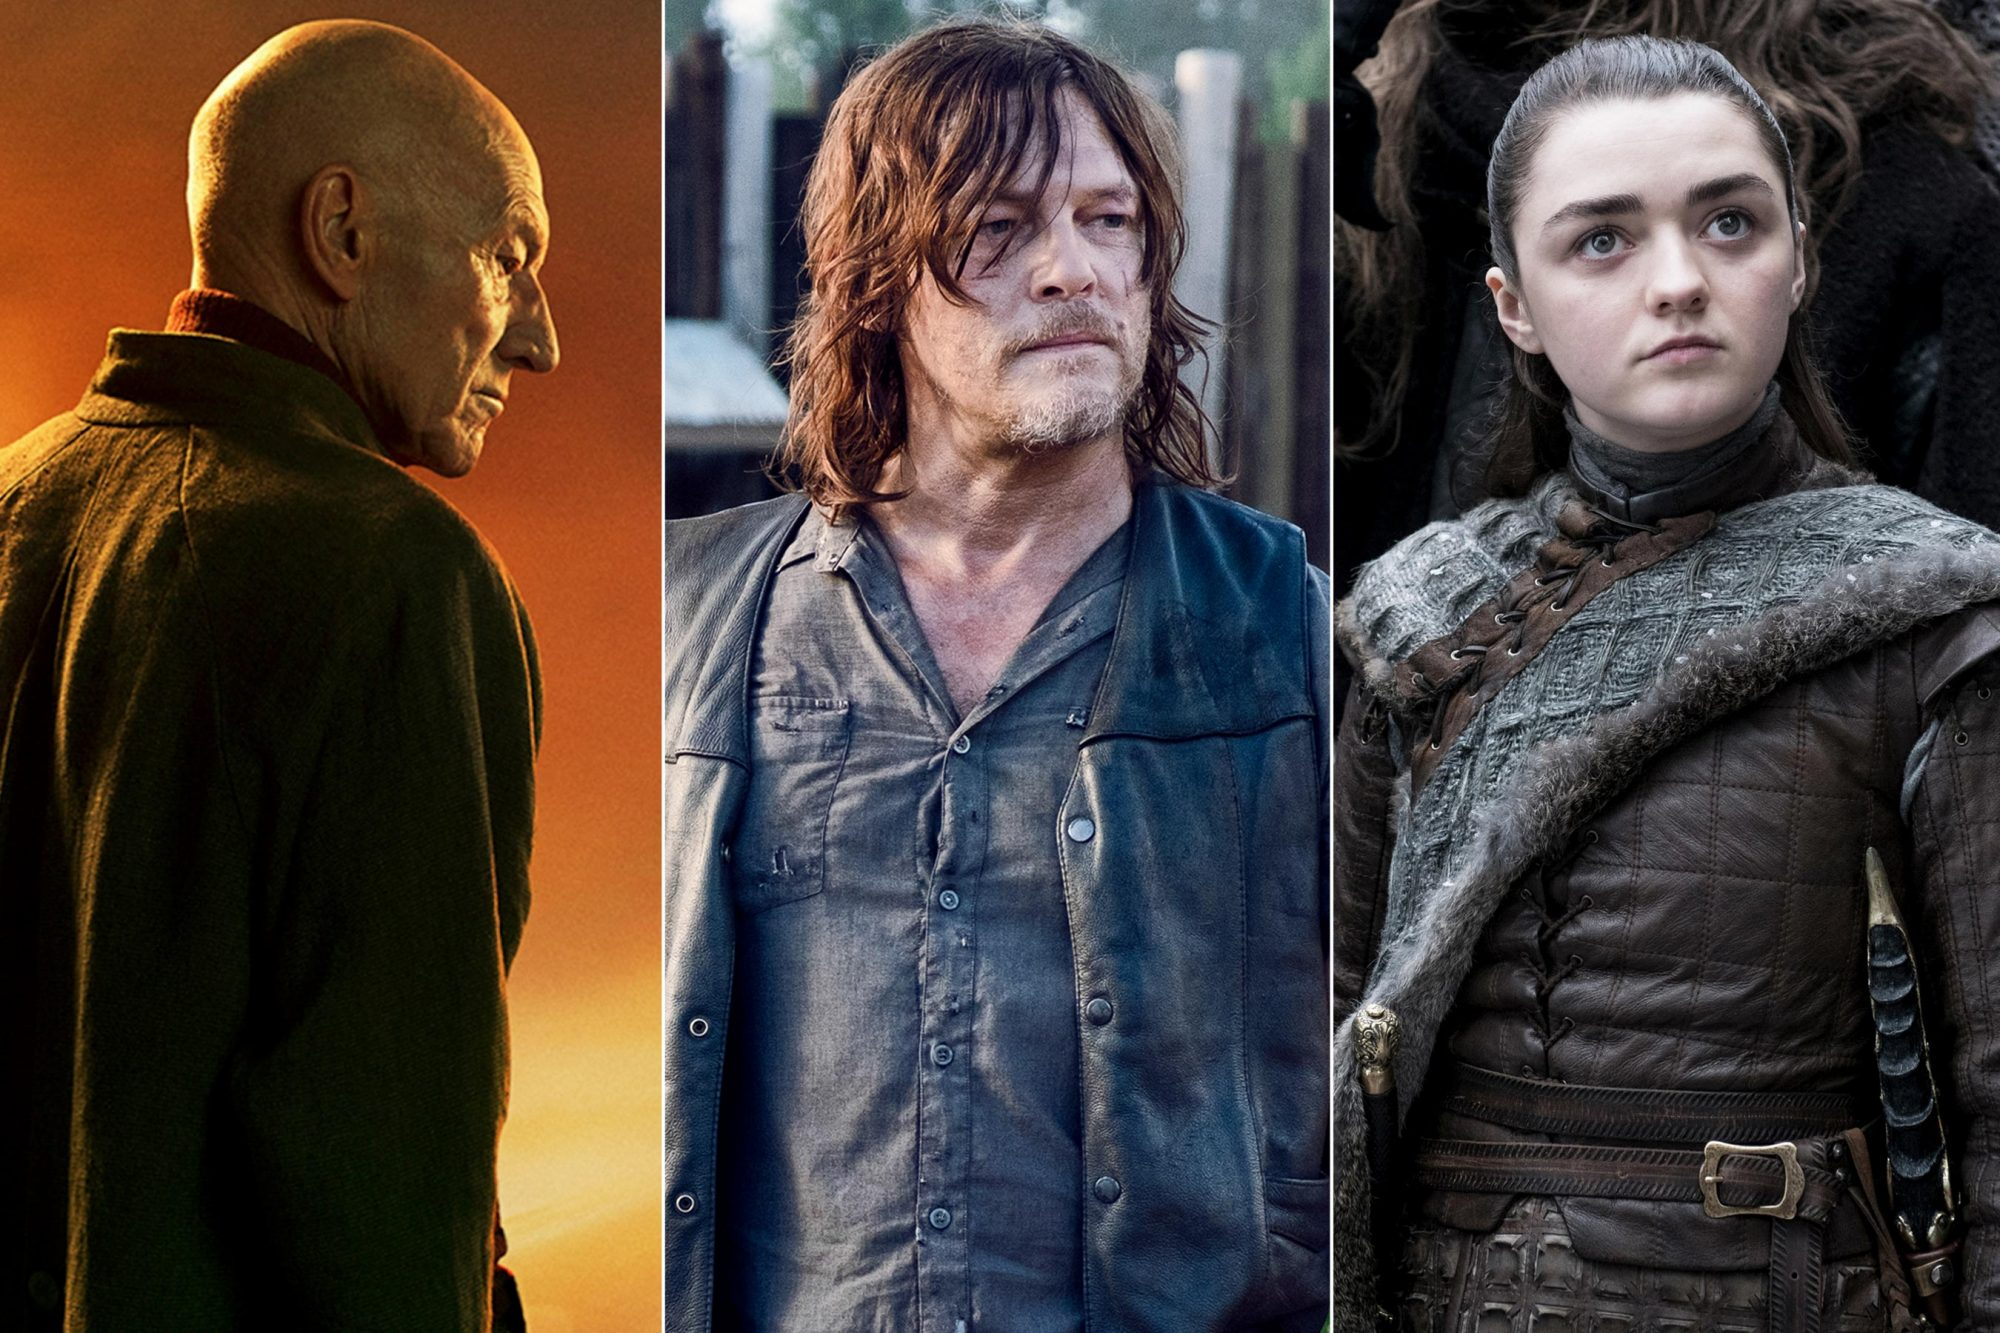 STAR TREK: PICARD -- Key Art Photo Cr: James Dimmock/CBS ©2019 CBS Interactive, Inc. All Rights Reserved. Norman Reedus as Daryl Dixon- The Walking Dead _ Season 9, Episode 11 - Photo Credit: Gene Page/AMC Game of Thrones Season 8, Episode 1 Maisie Williams as Arya Stark Photo: Helen Sloan/HBO